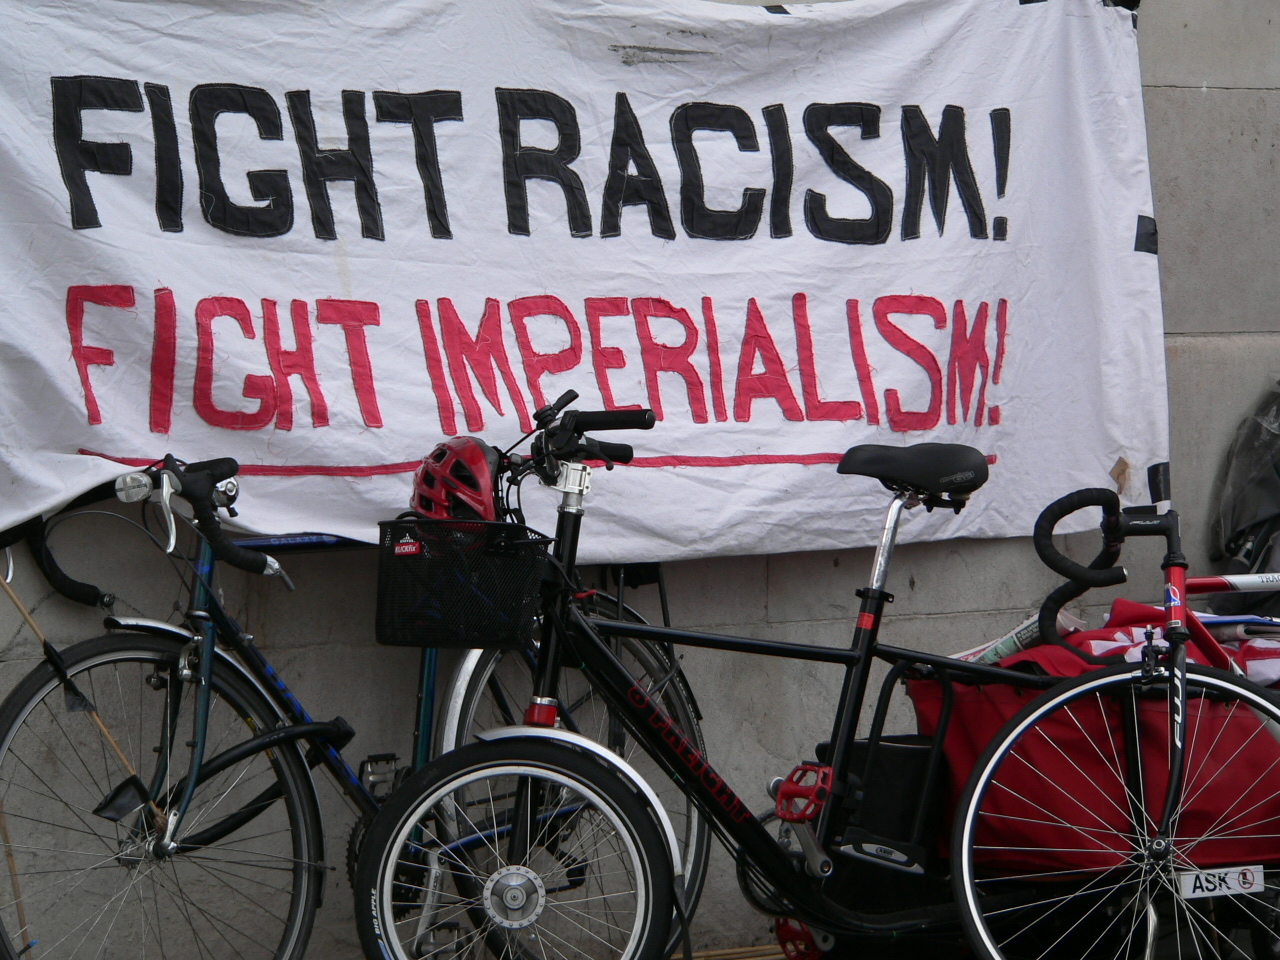 A sign advising the viewer to fight racism and imperialism